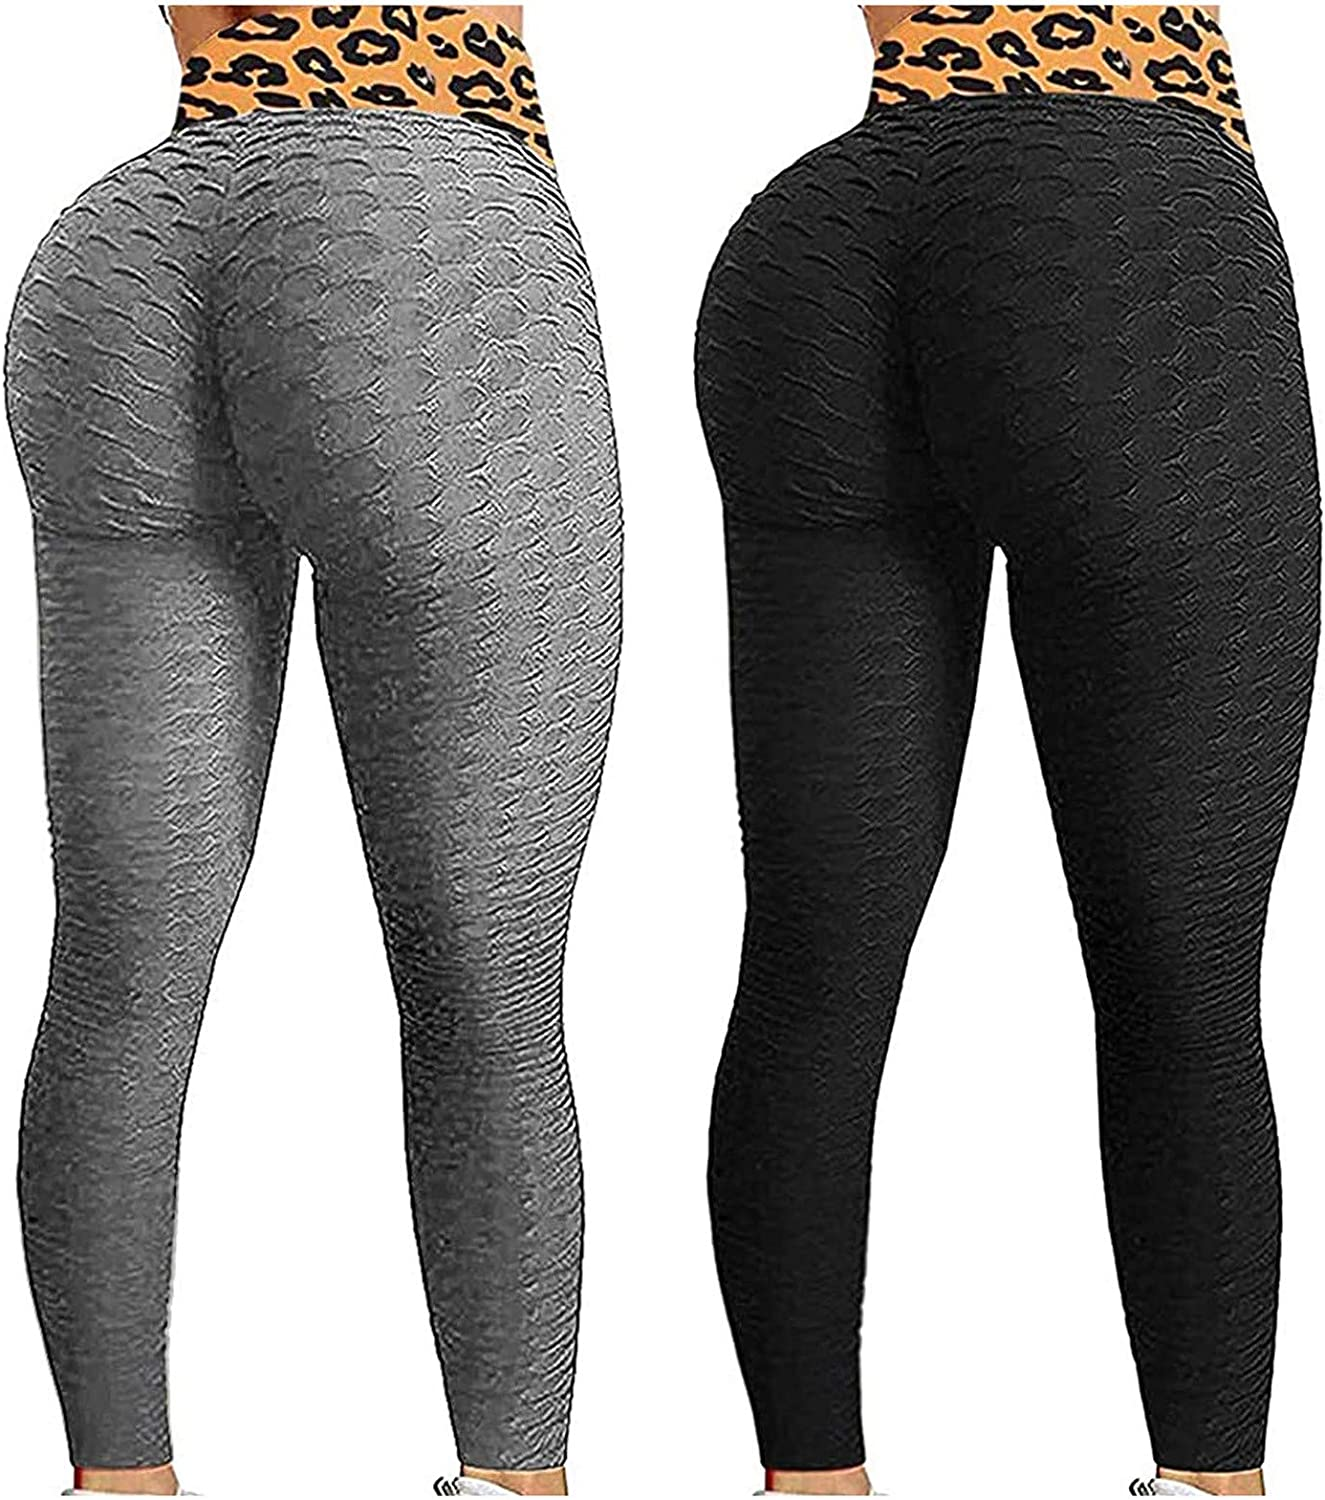 2 Pack Leggings for Women Tummy Ranking TOP9 Hip Control High Al sold out. Waist